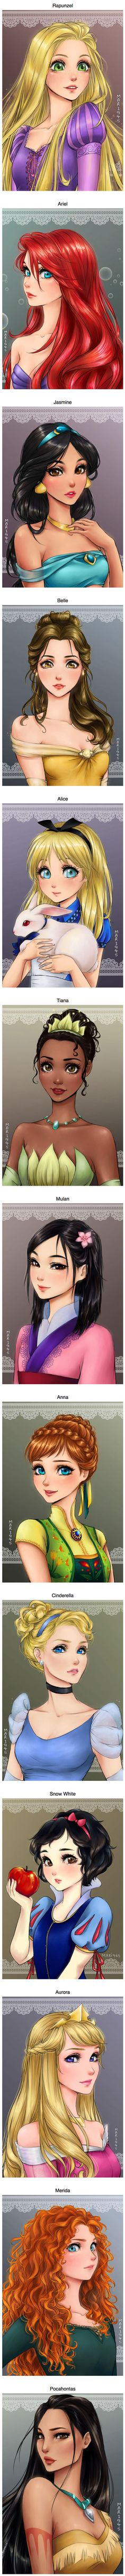 Disney Princesses if they were anime characters. - Imgur